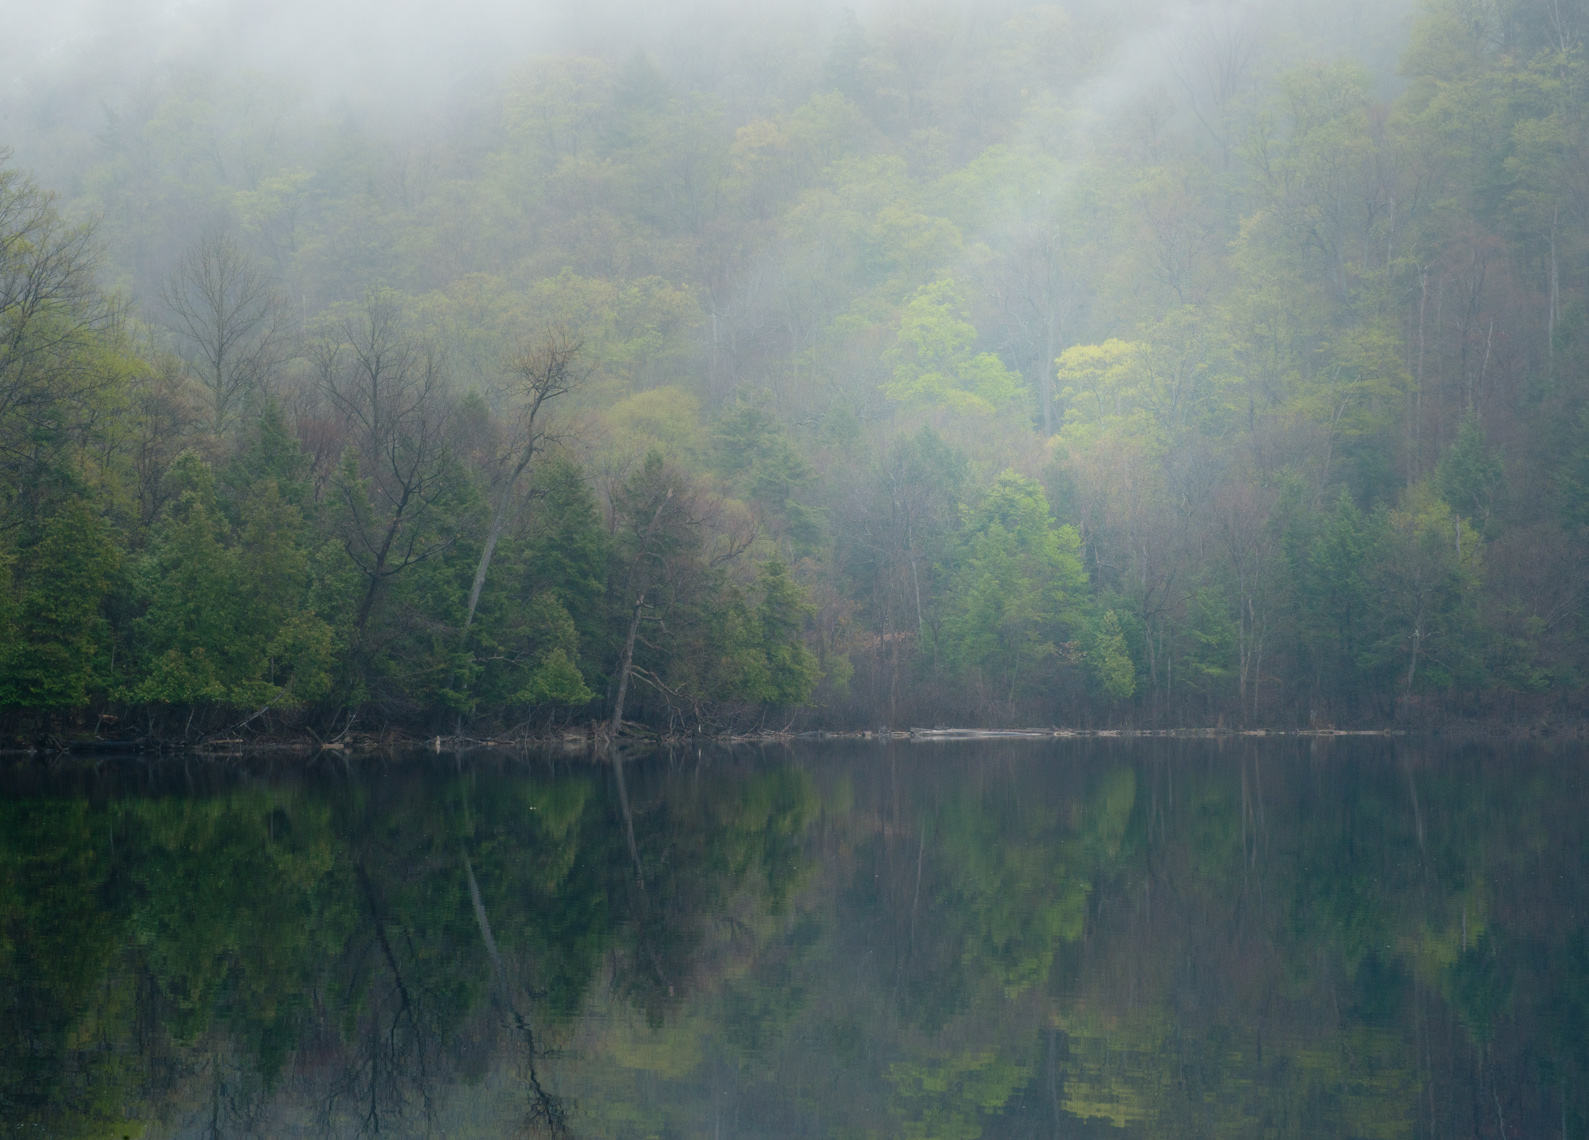 Mist Over Round Lake, Green Lakes State Park, New York State